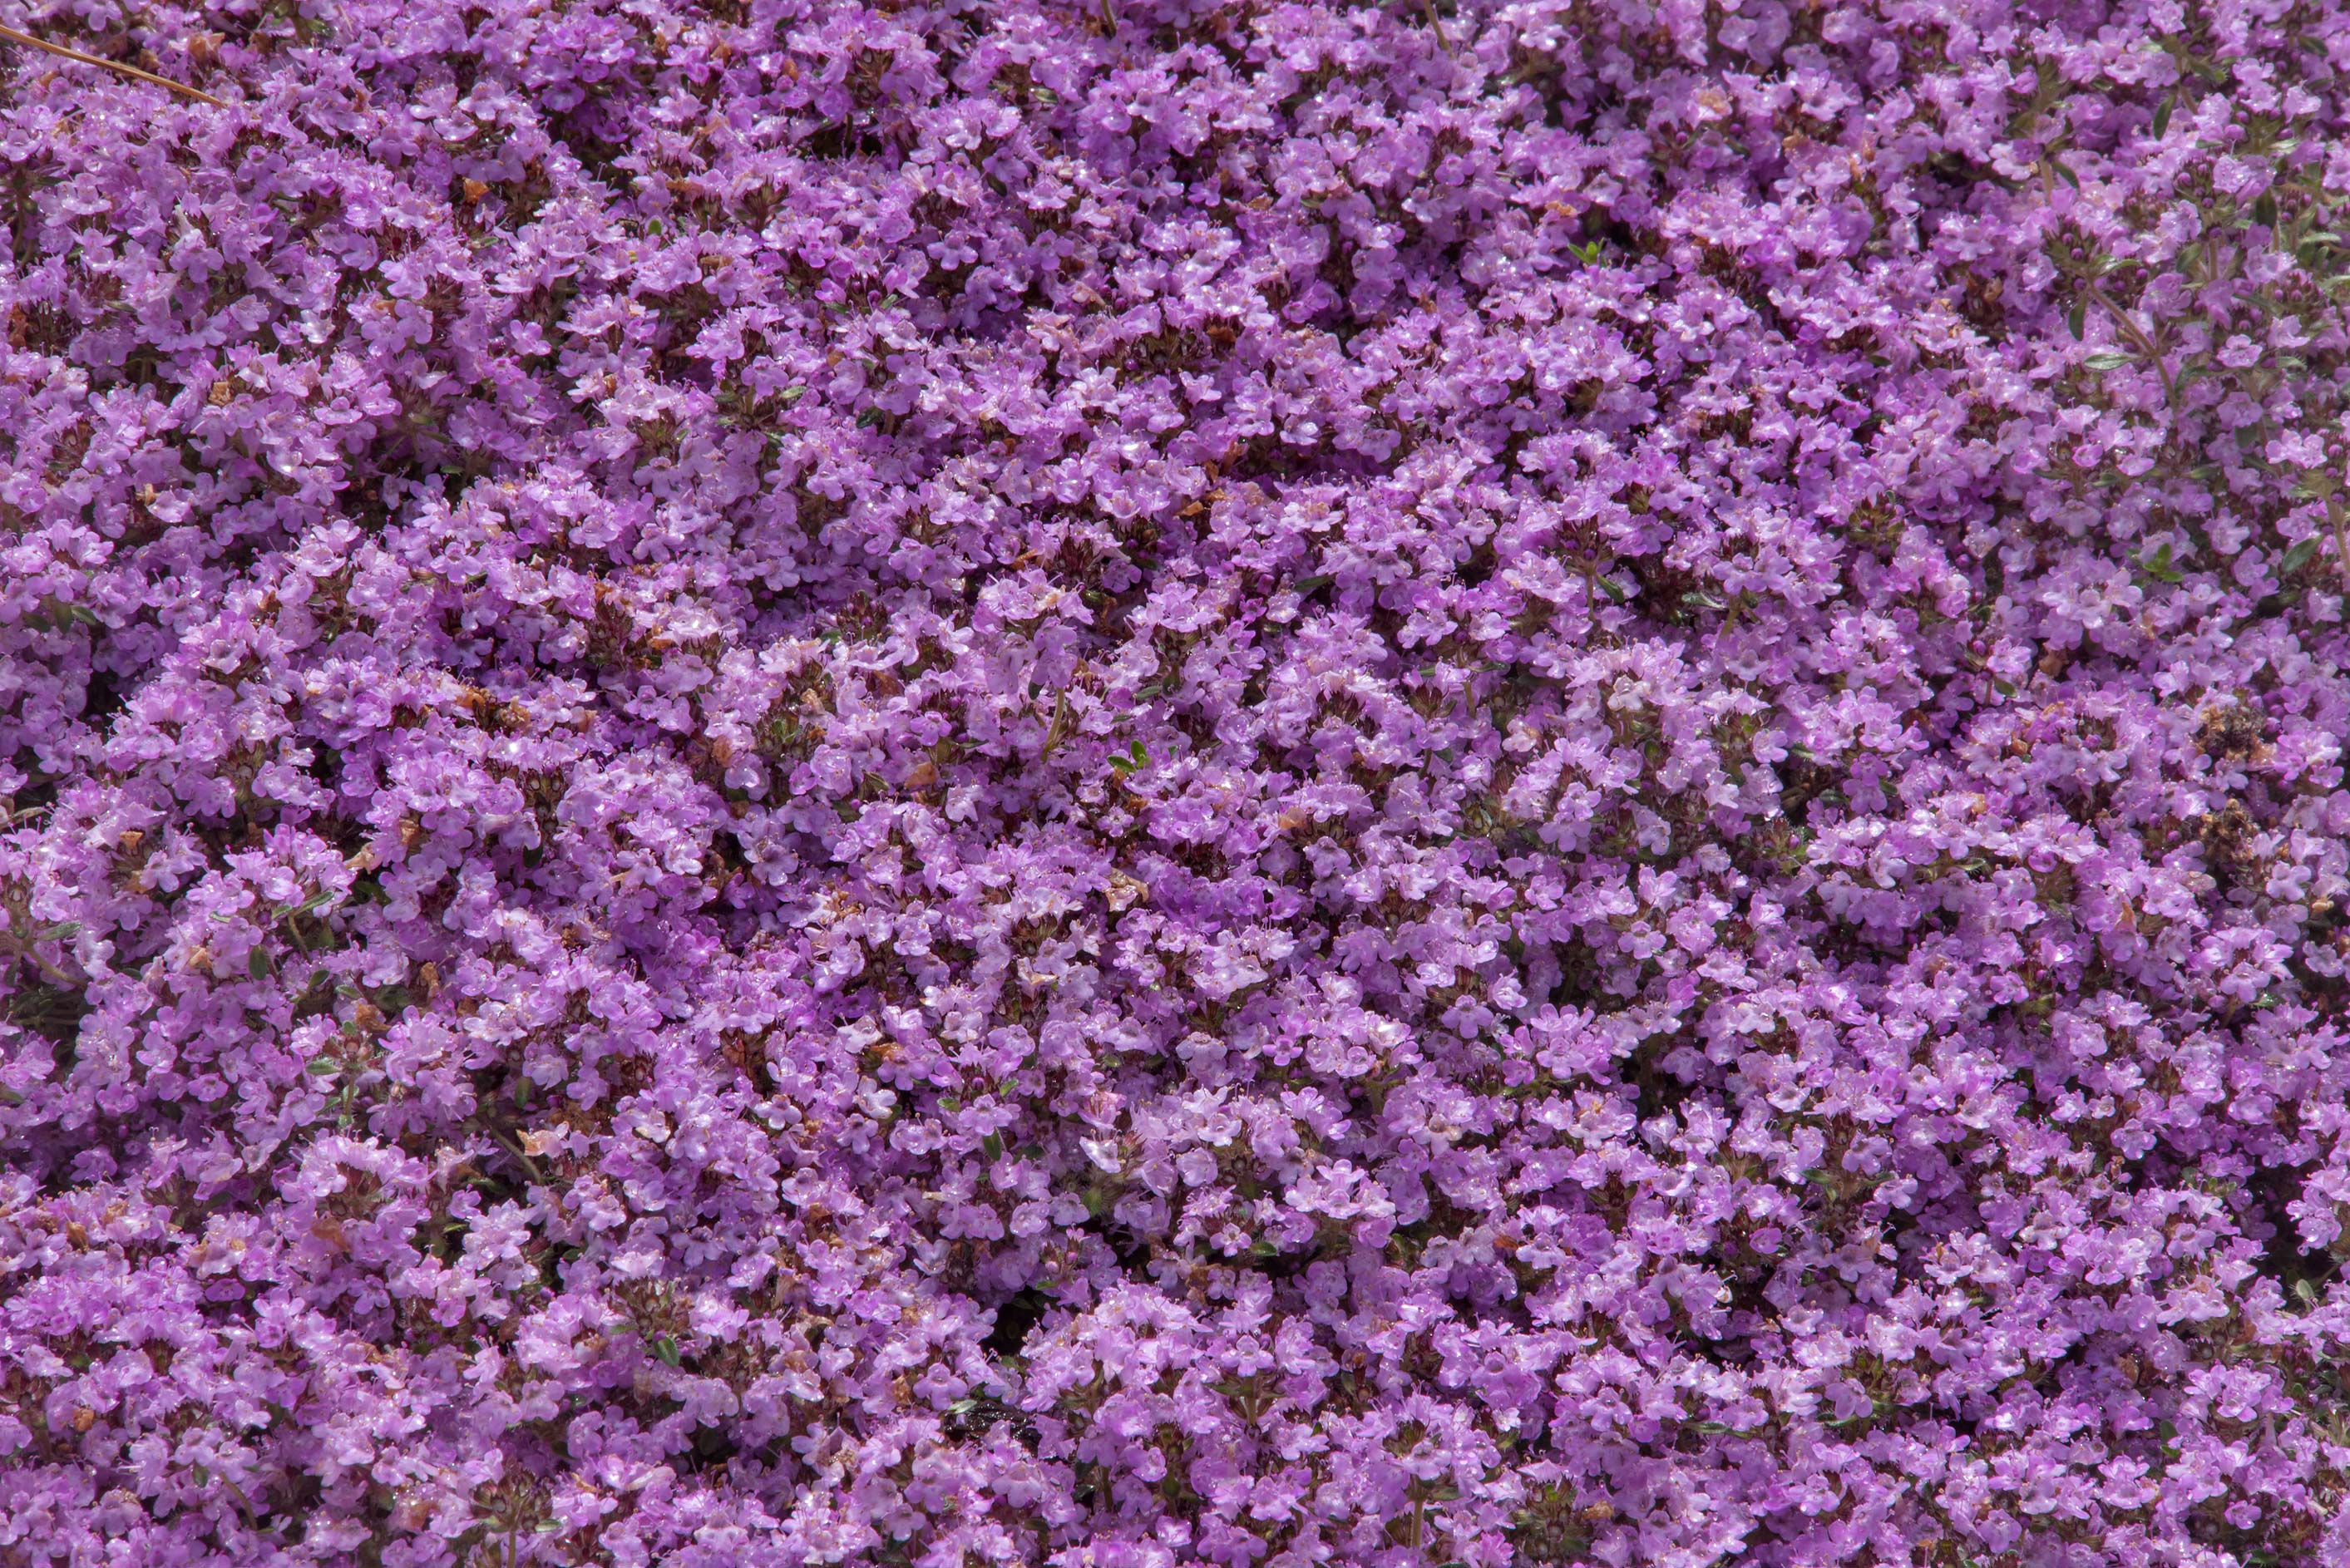 Carpet of thyme flowers in Botanic Gardens of...Institute. St.Petersburg, Russia